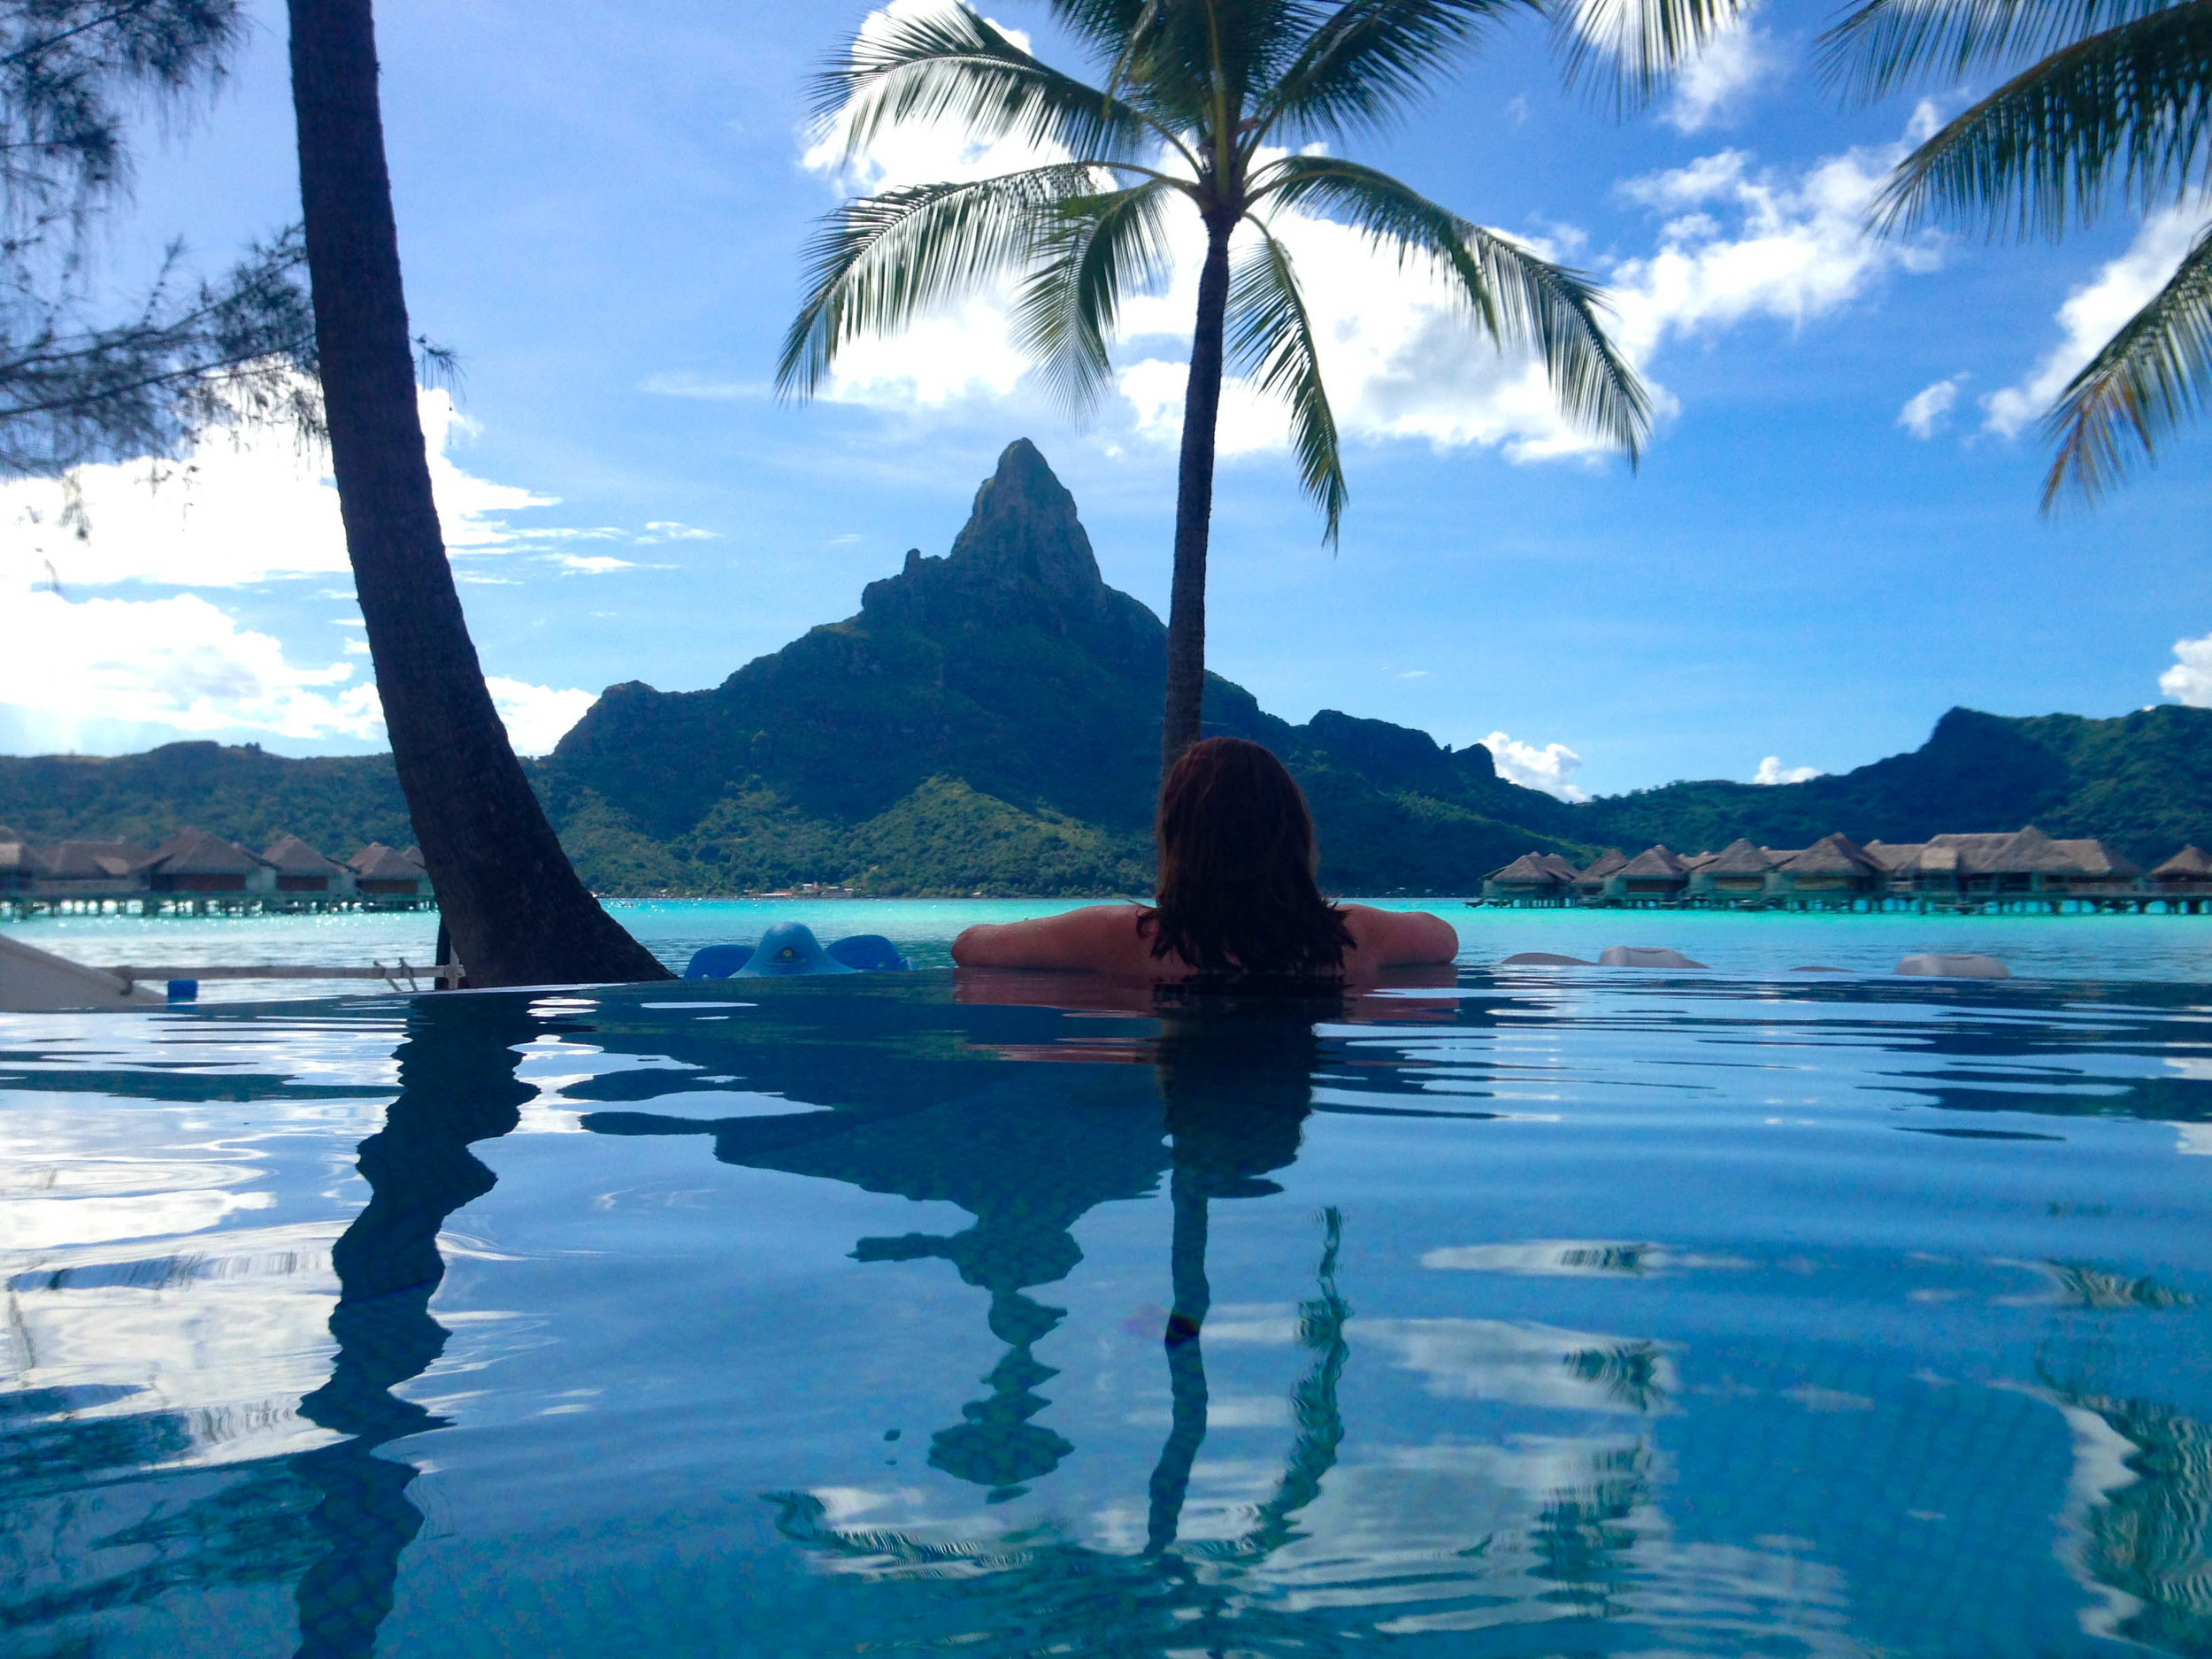 BORA BORA - Relax and stay in an overwater bungalow at the InterContinental